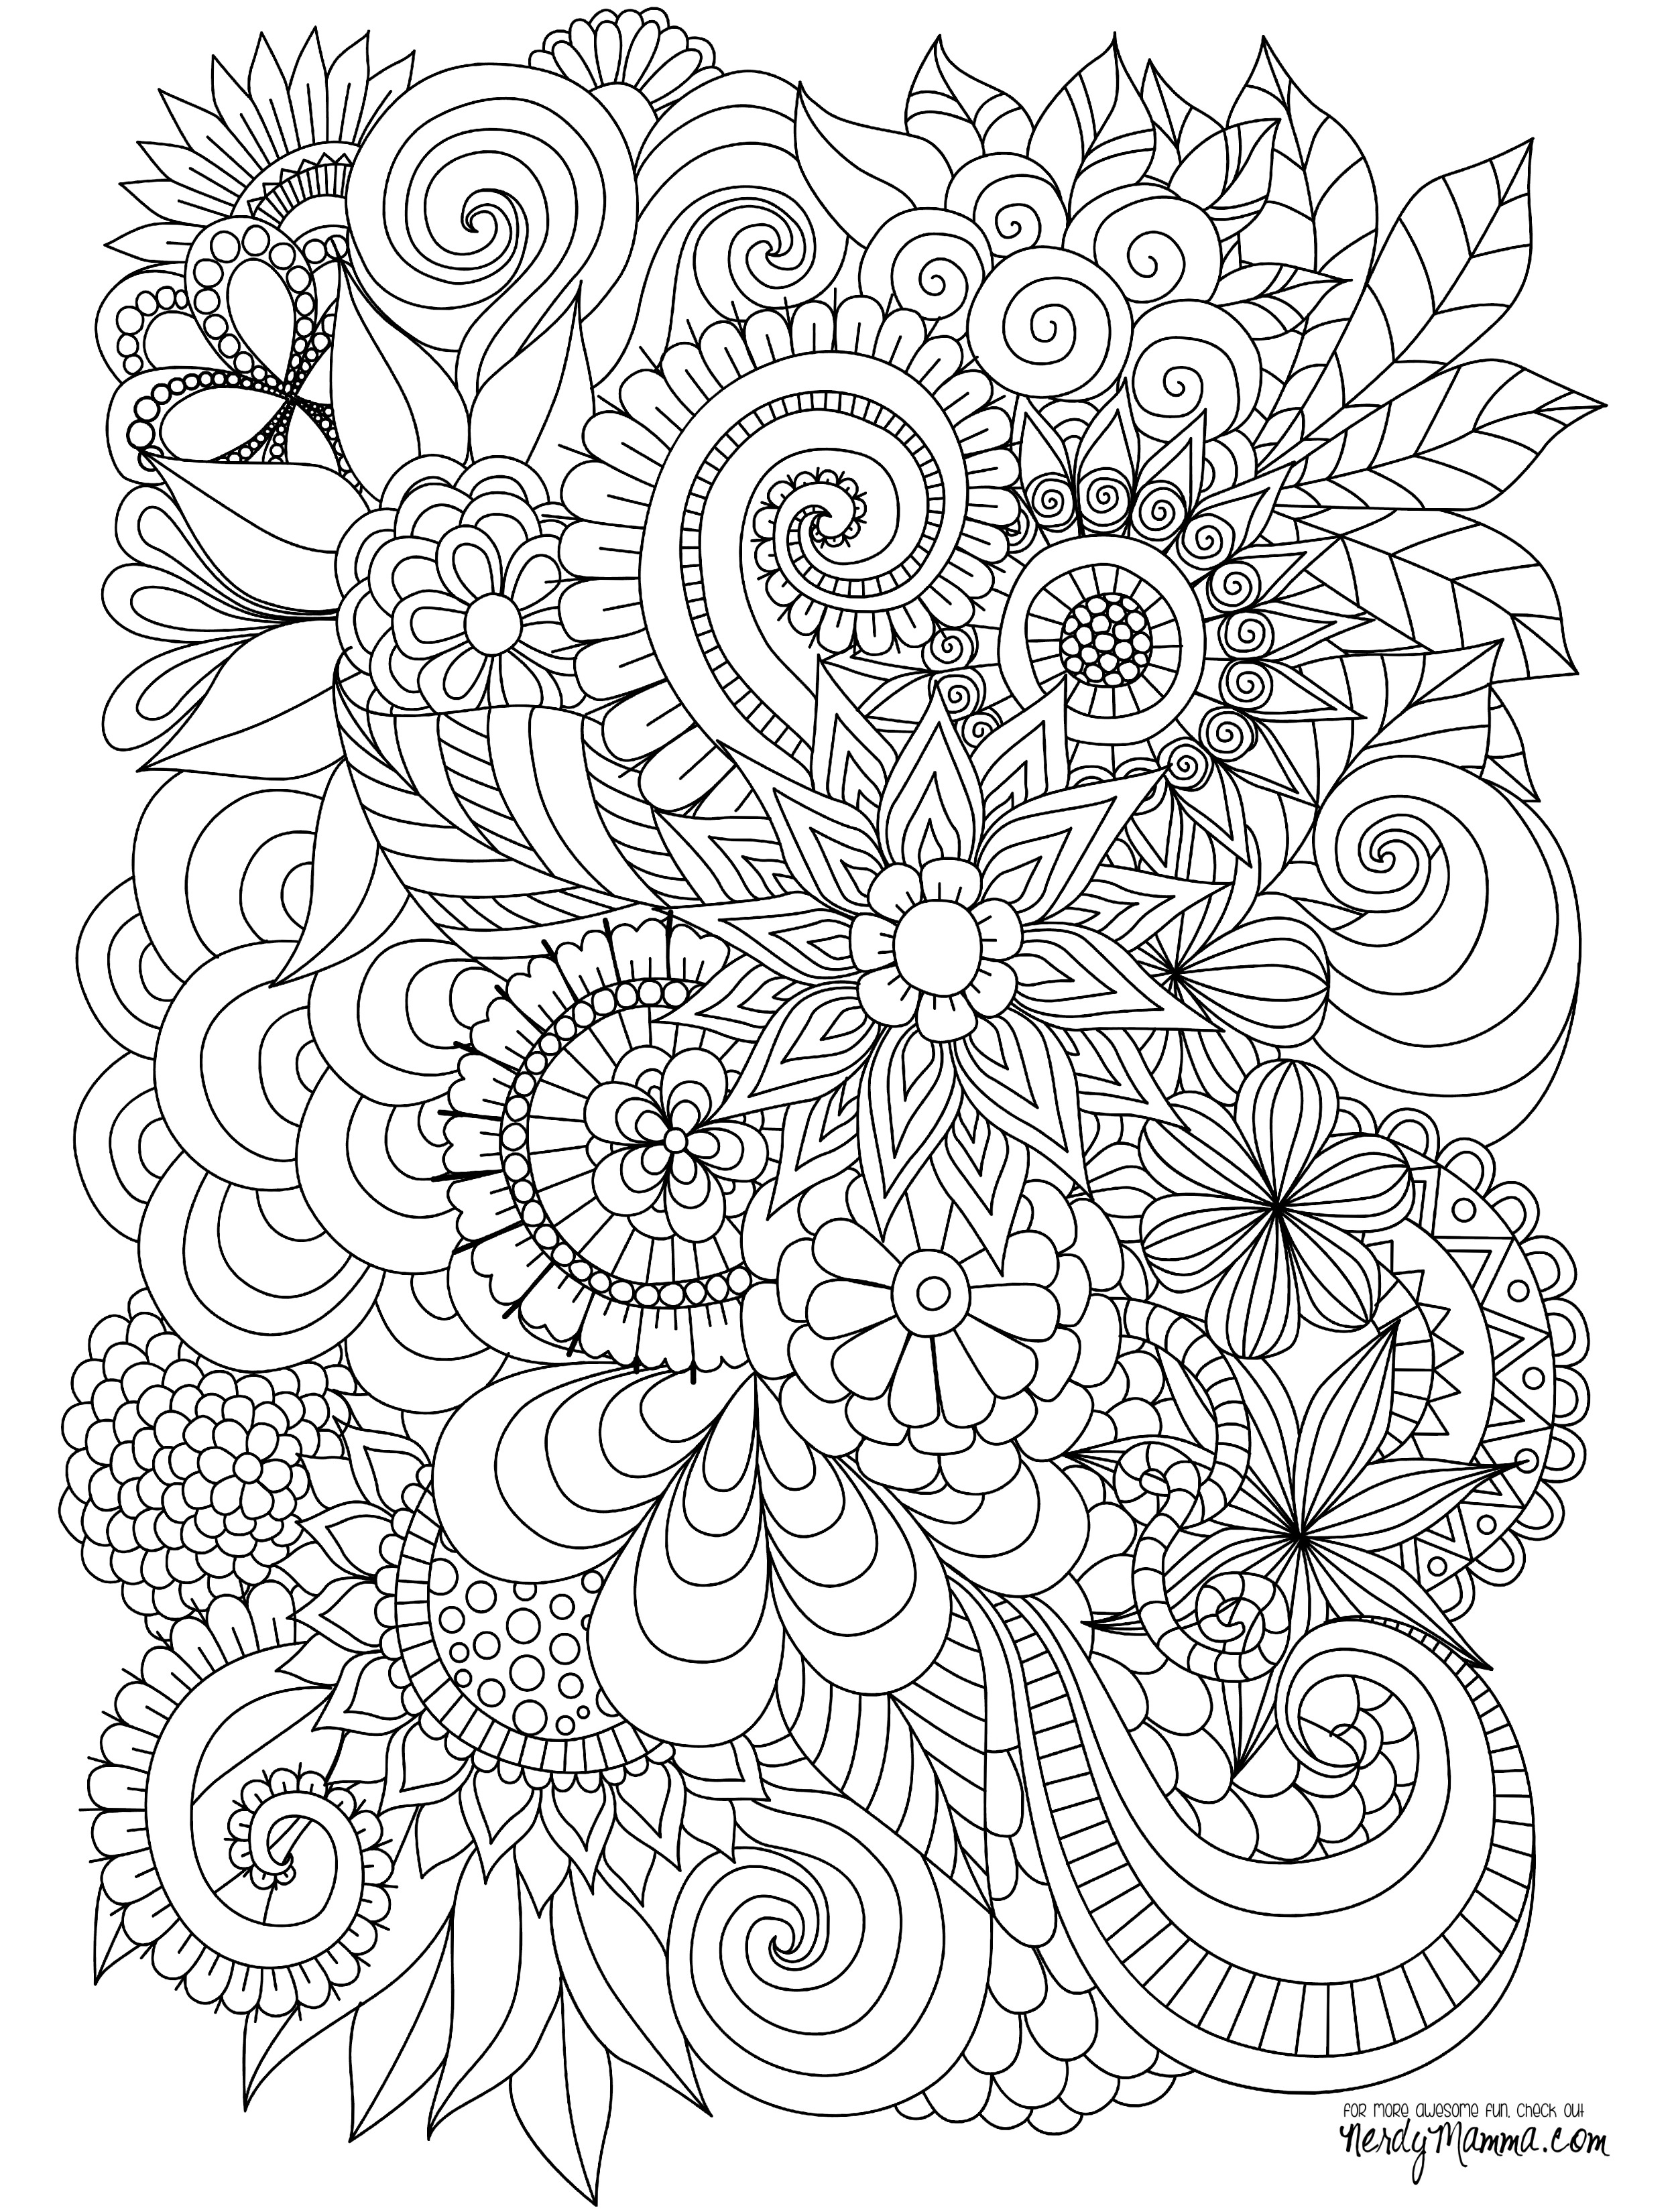 - Free Printable Coloring Pages For Adults Pdf At GetDrawings Free